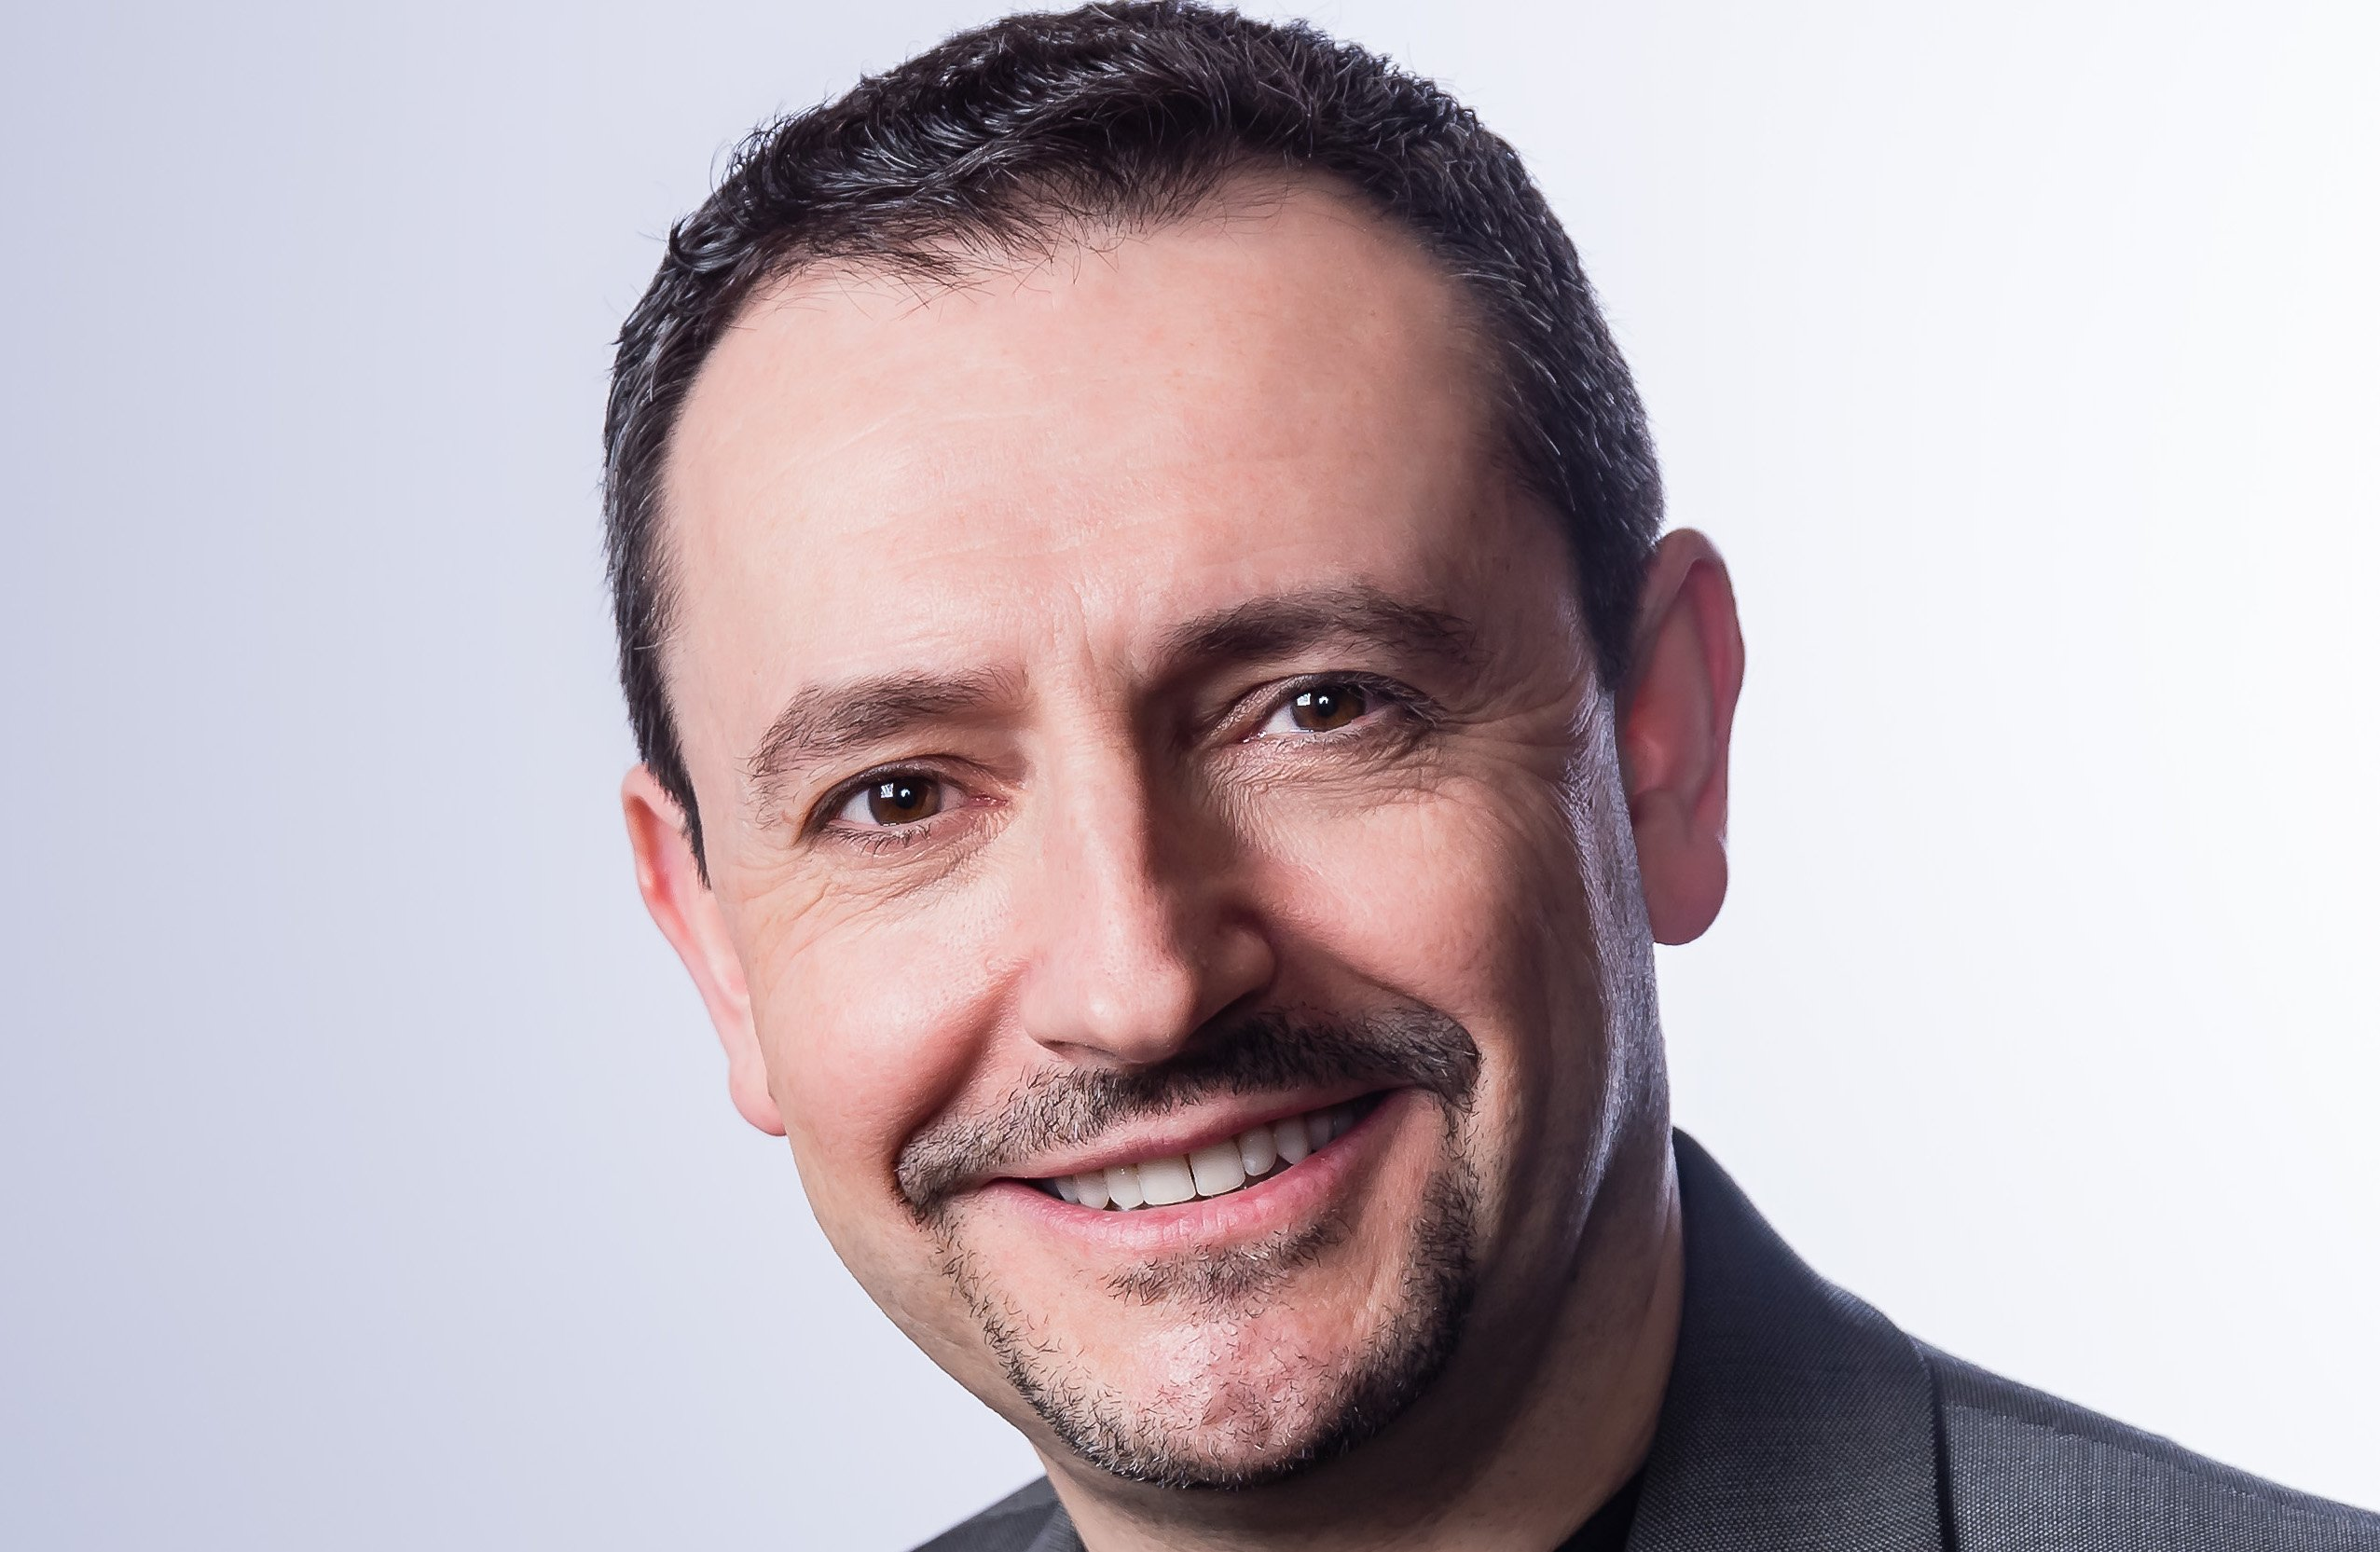 The Global Leaders in Consulting: Jesus Mantas